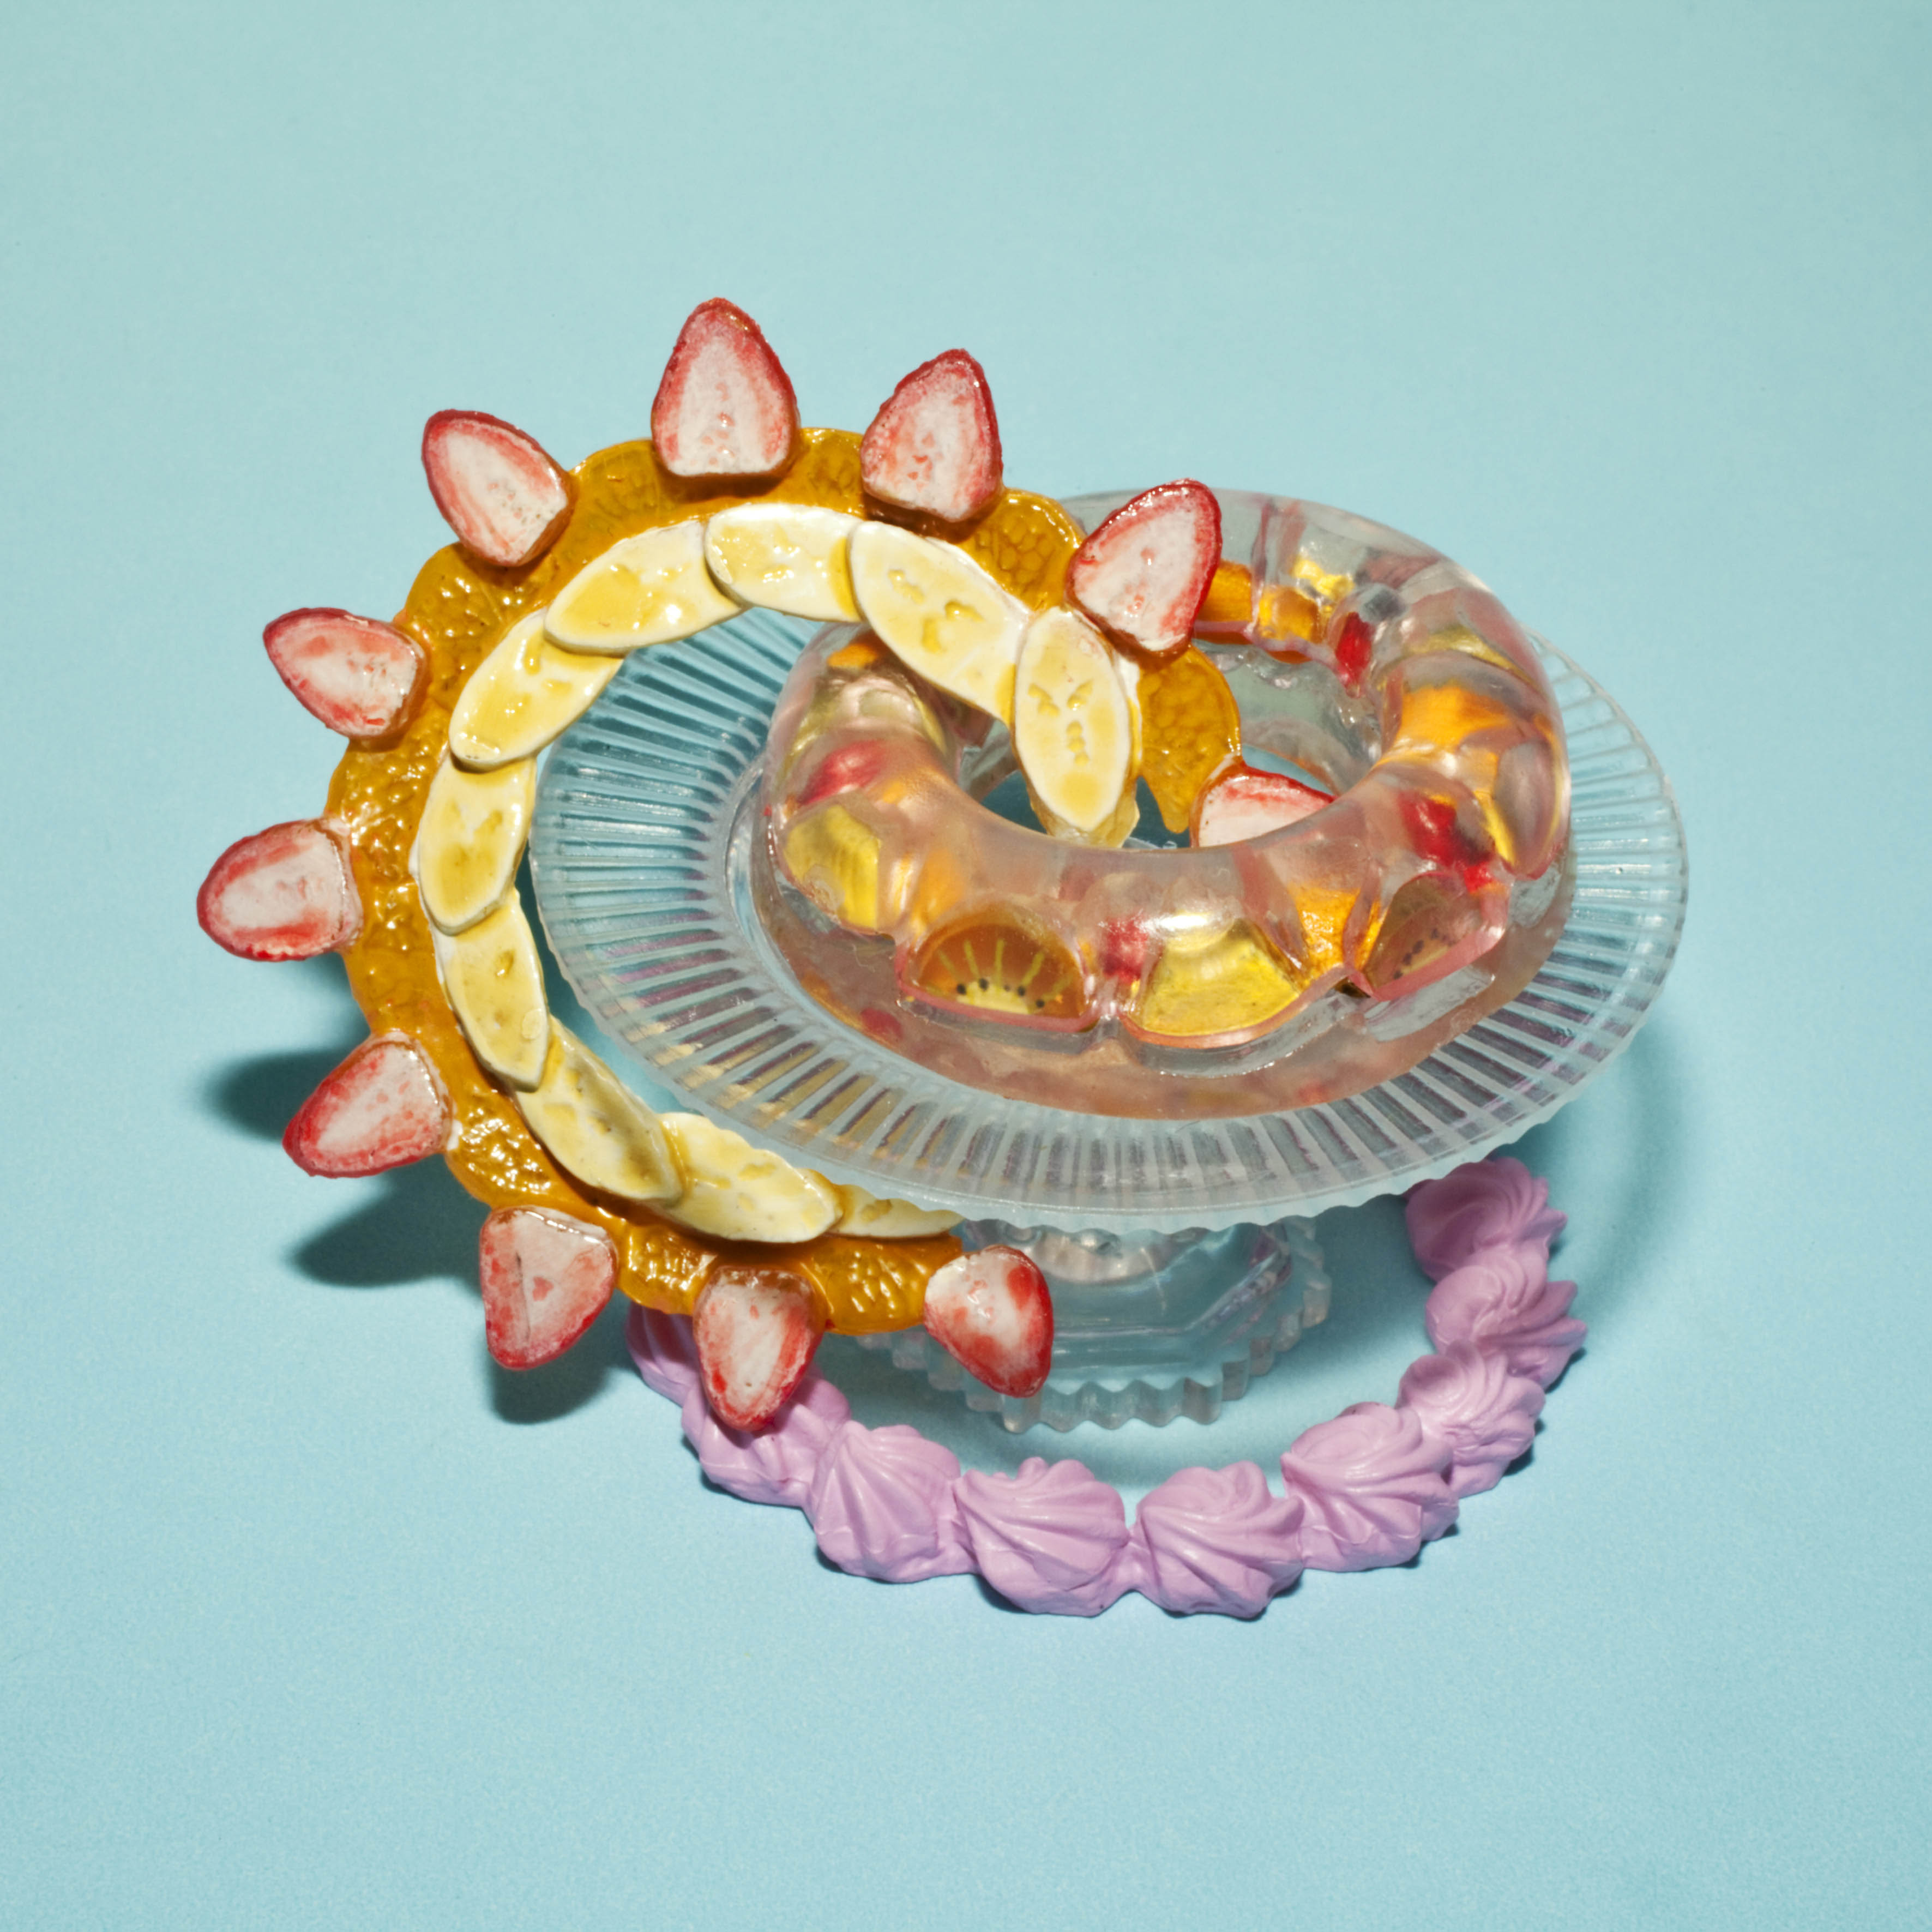 Fotó: Joseph Maida: #jelly #jello #fruity #fruto #thingsarequeer, October 26, 2014 Courtesy the artist